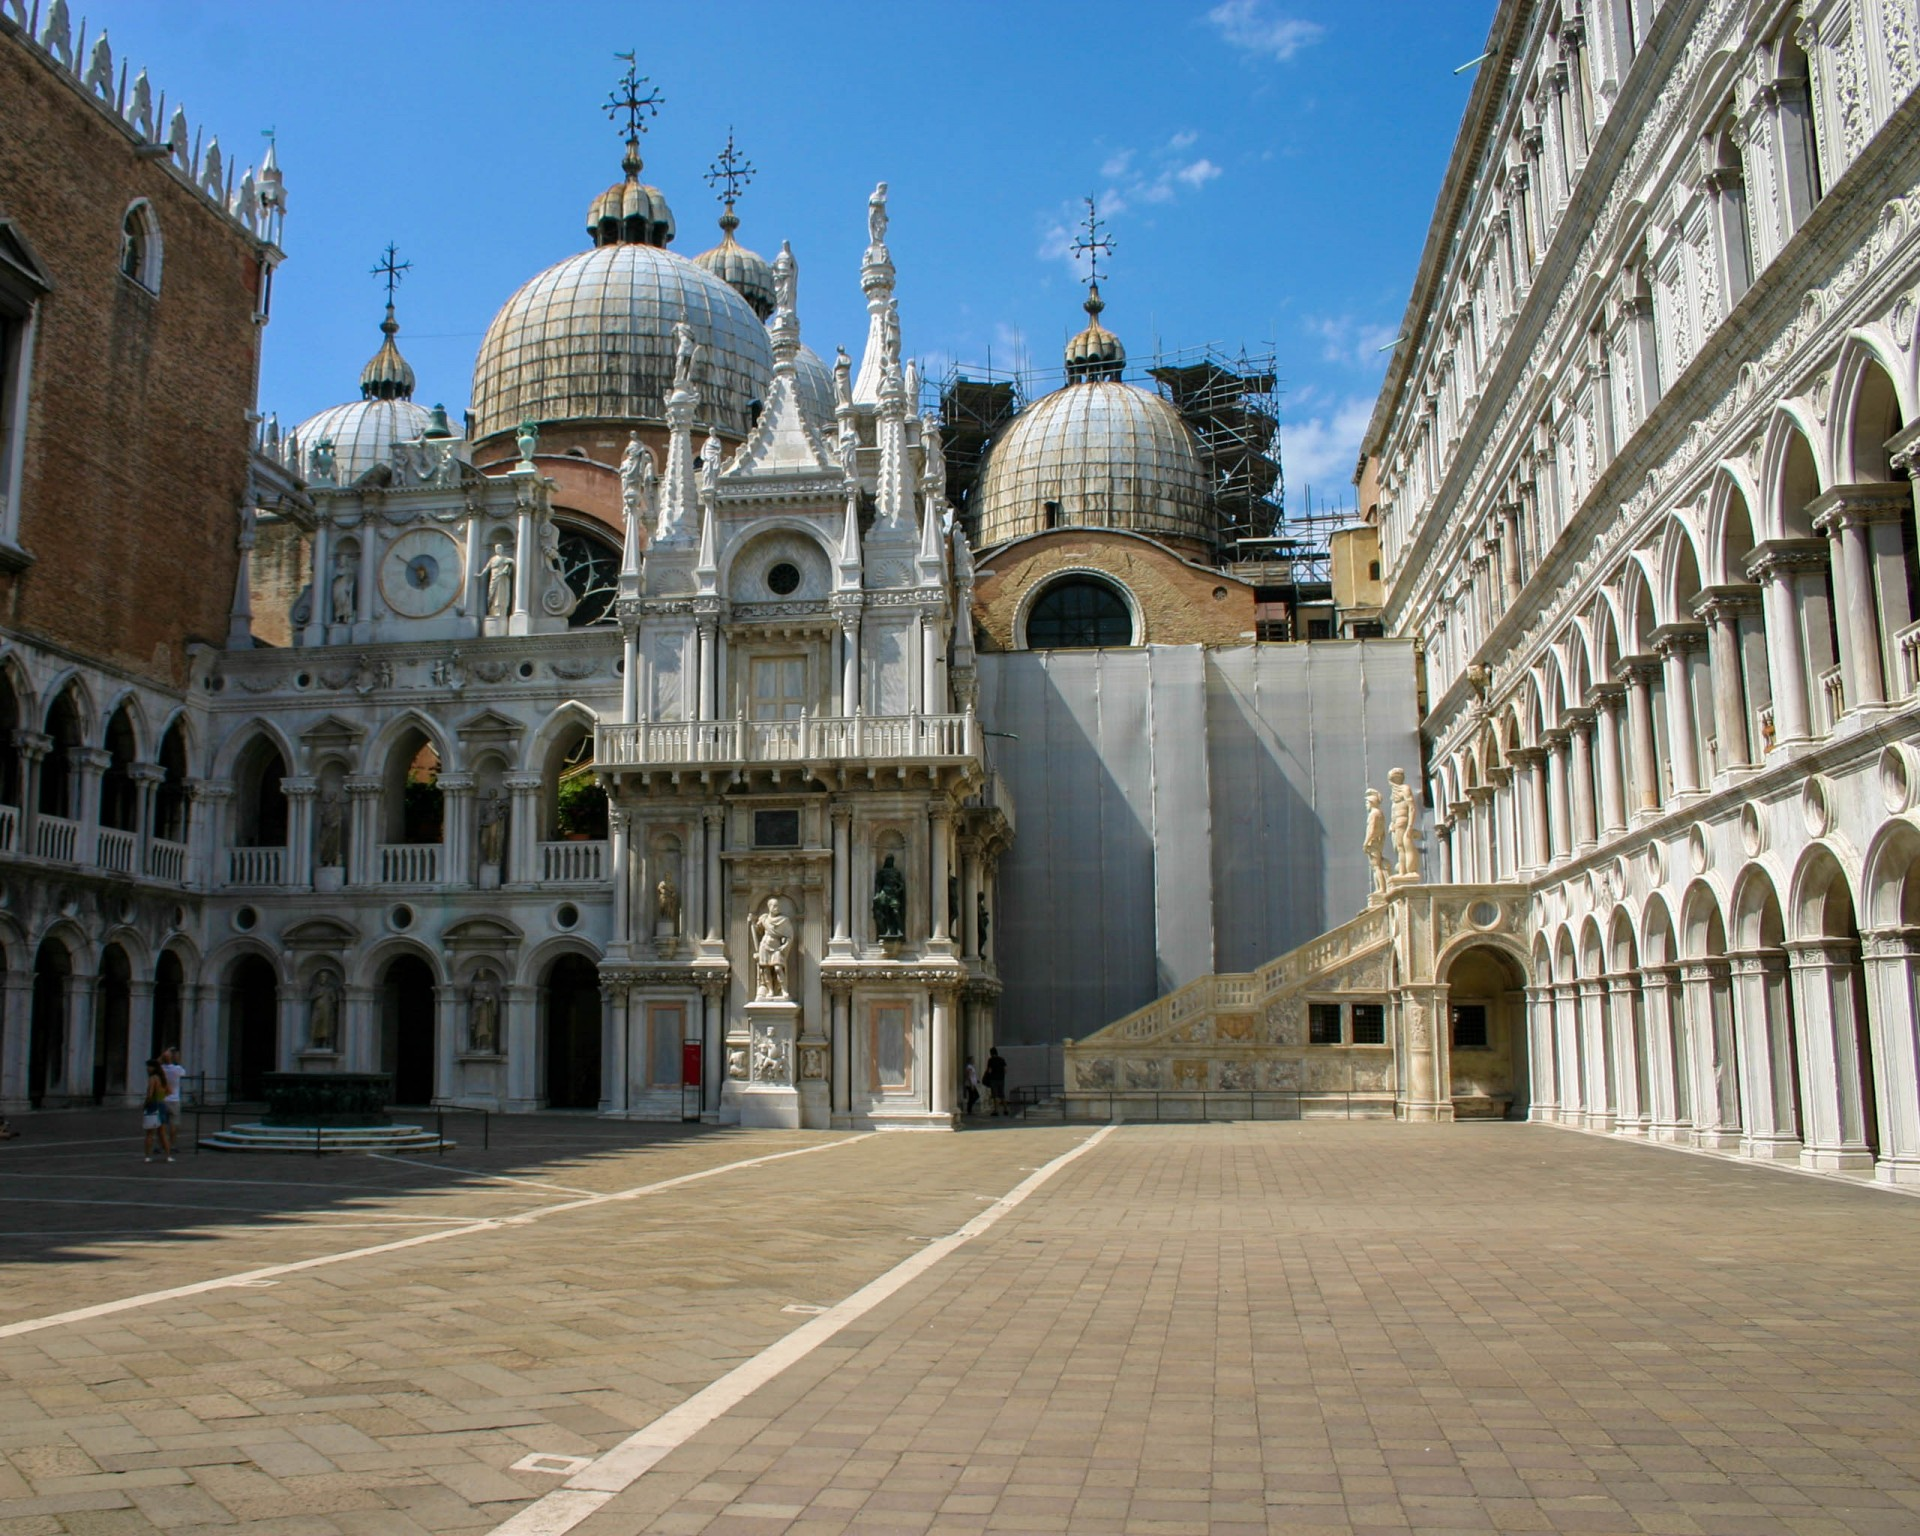 An empty square looks onto St. Marks Cathedral in Venice, Italy - Lost in Venice